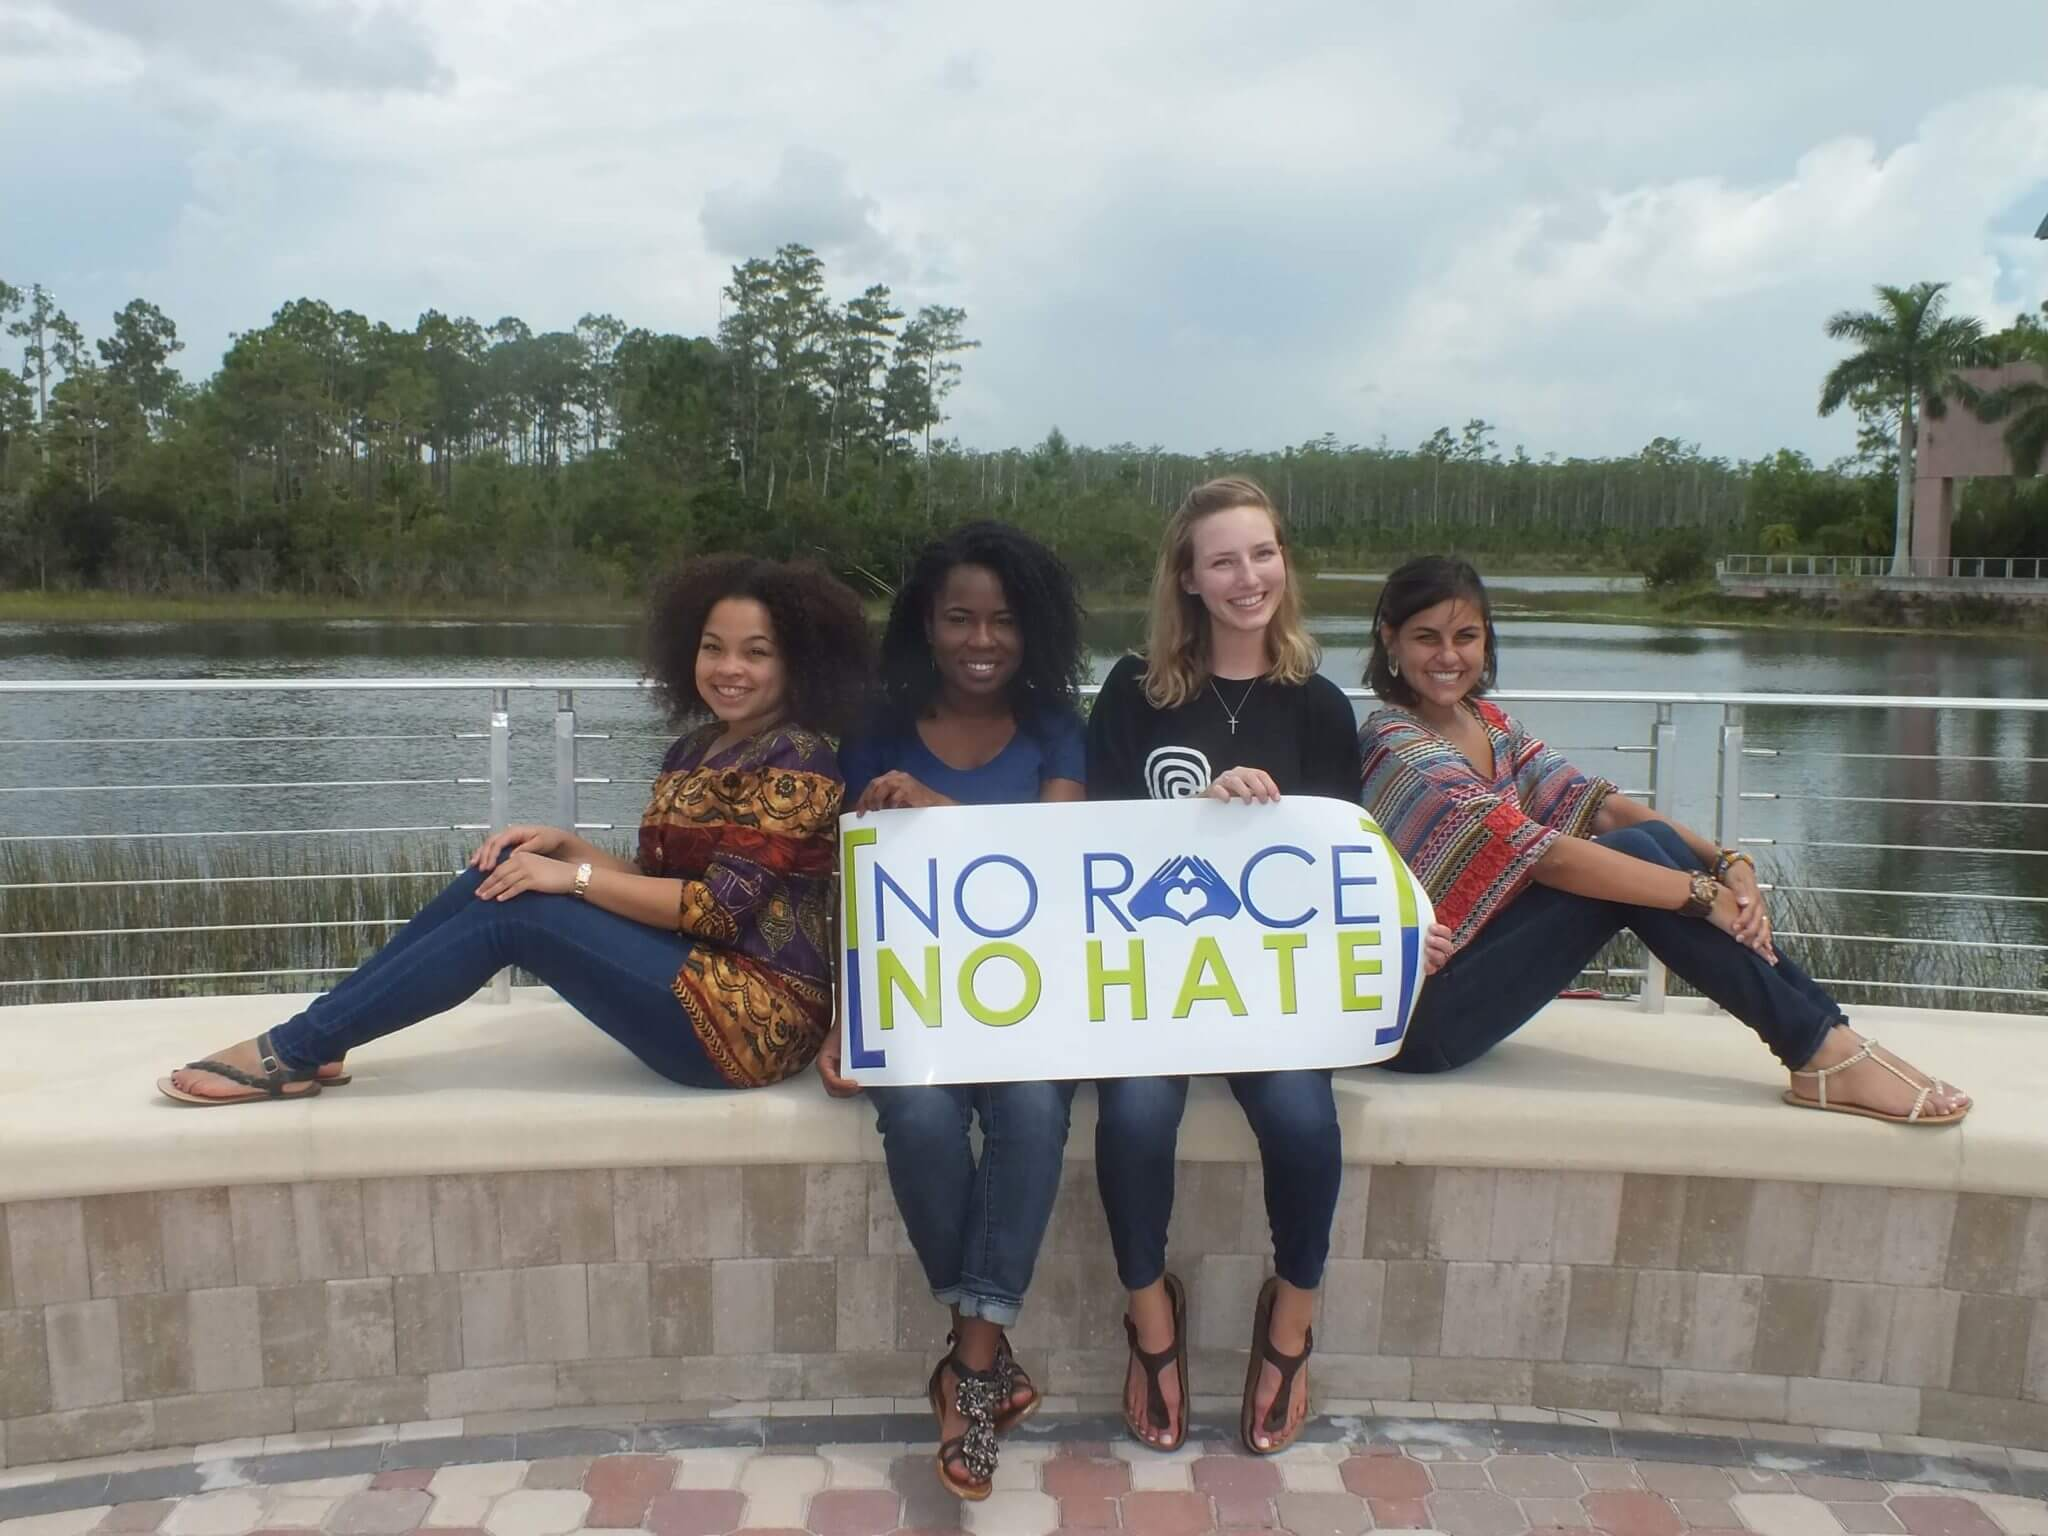 New RSO aims to question the idea of race, empower students